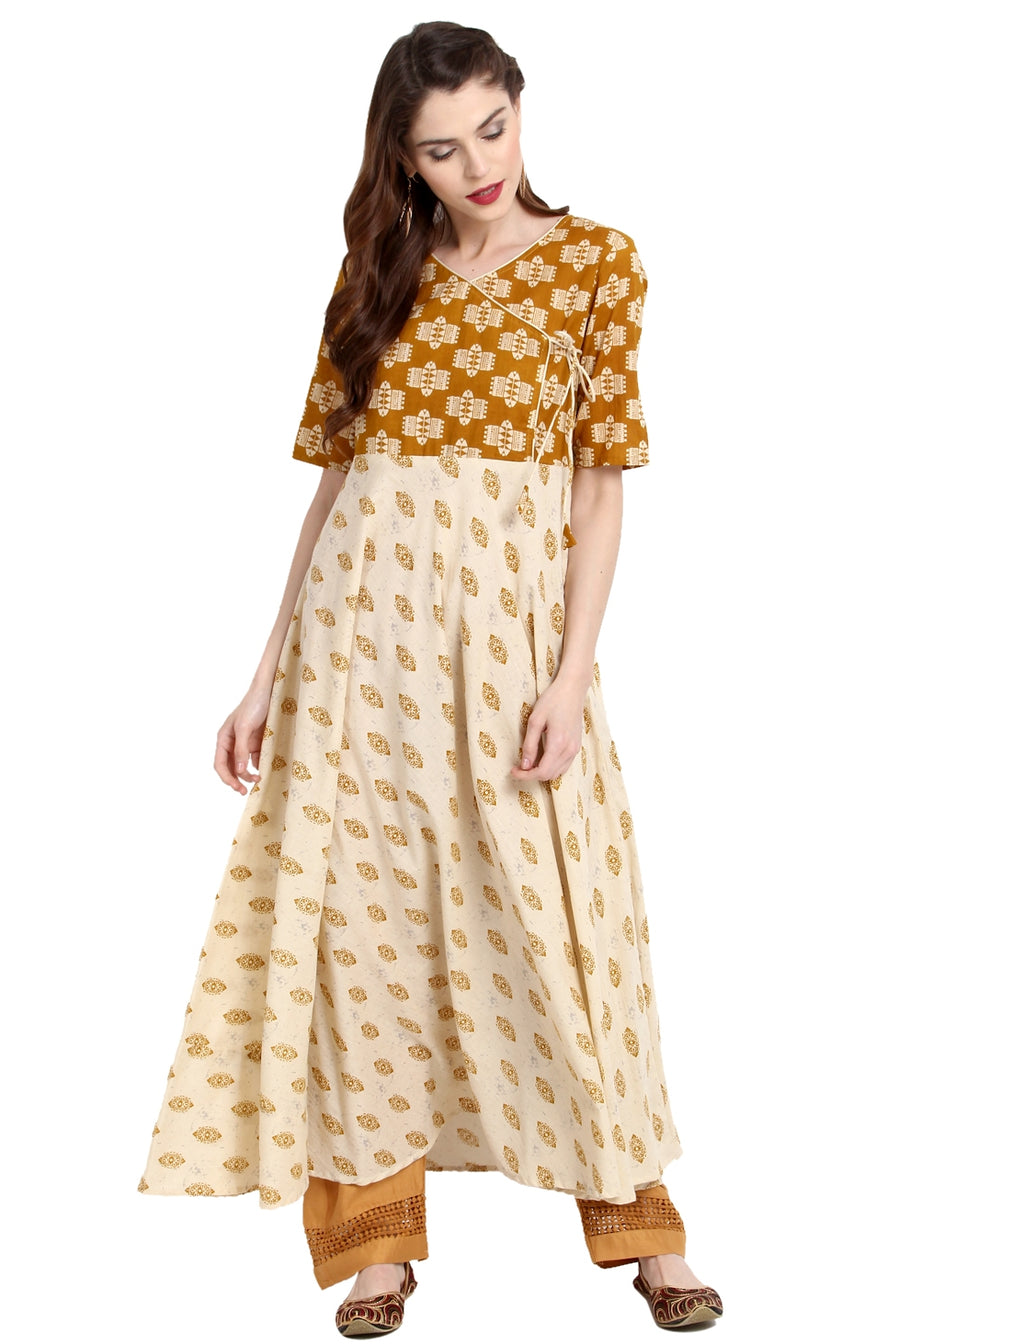 Cream Color Cotton Readymade Party Wear Kurtis ( Sizes-36,38,40,42,44) Janasya Catlog SJ-10199